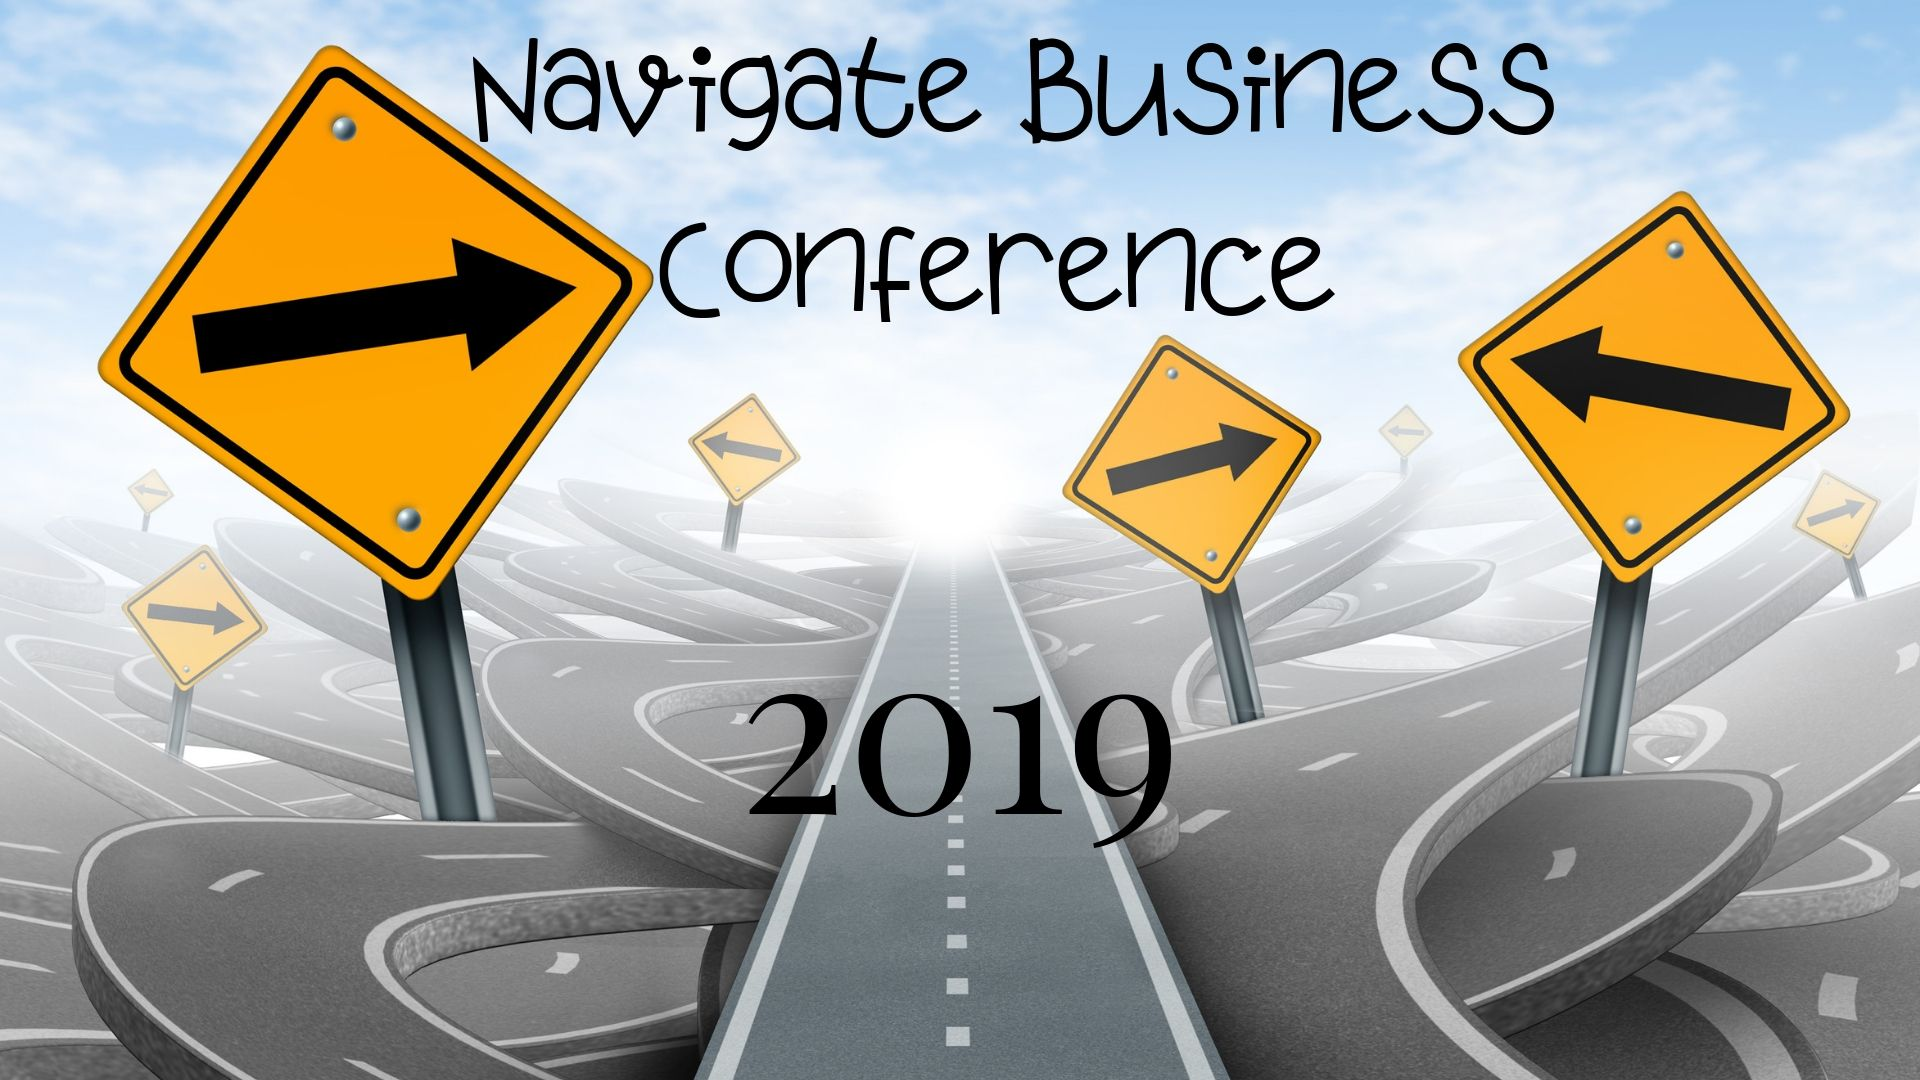 Navigate Business Summit